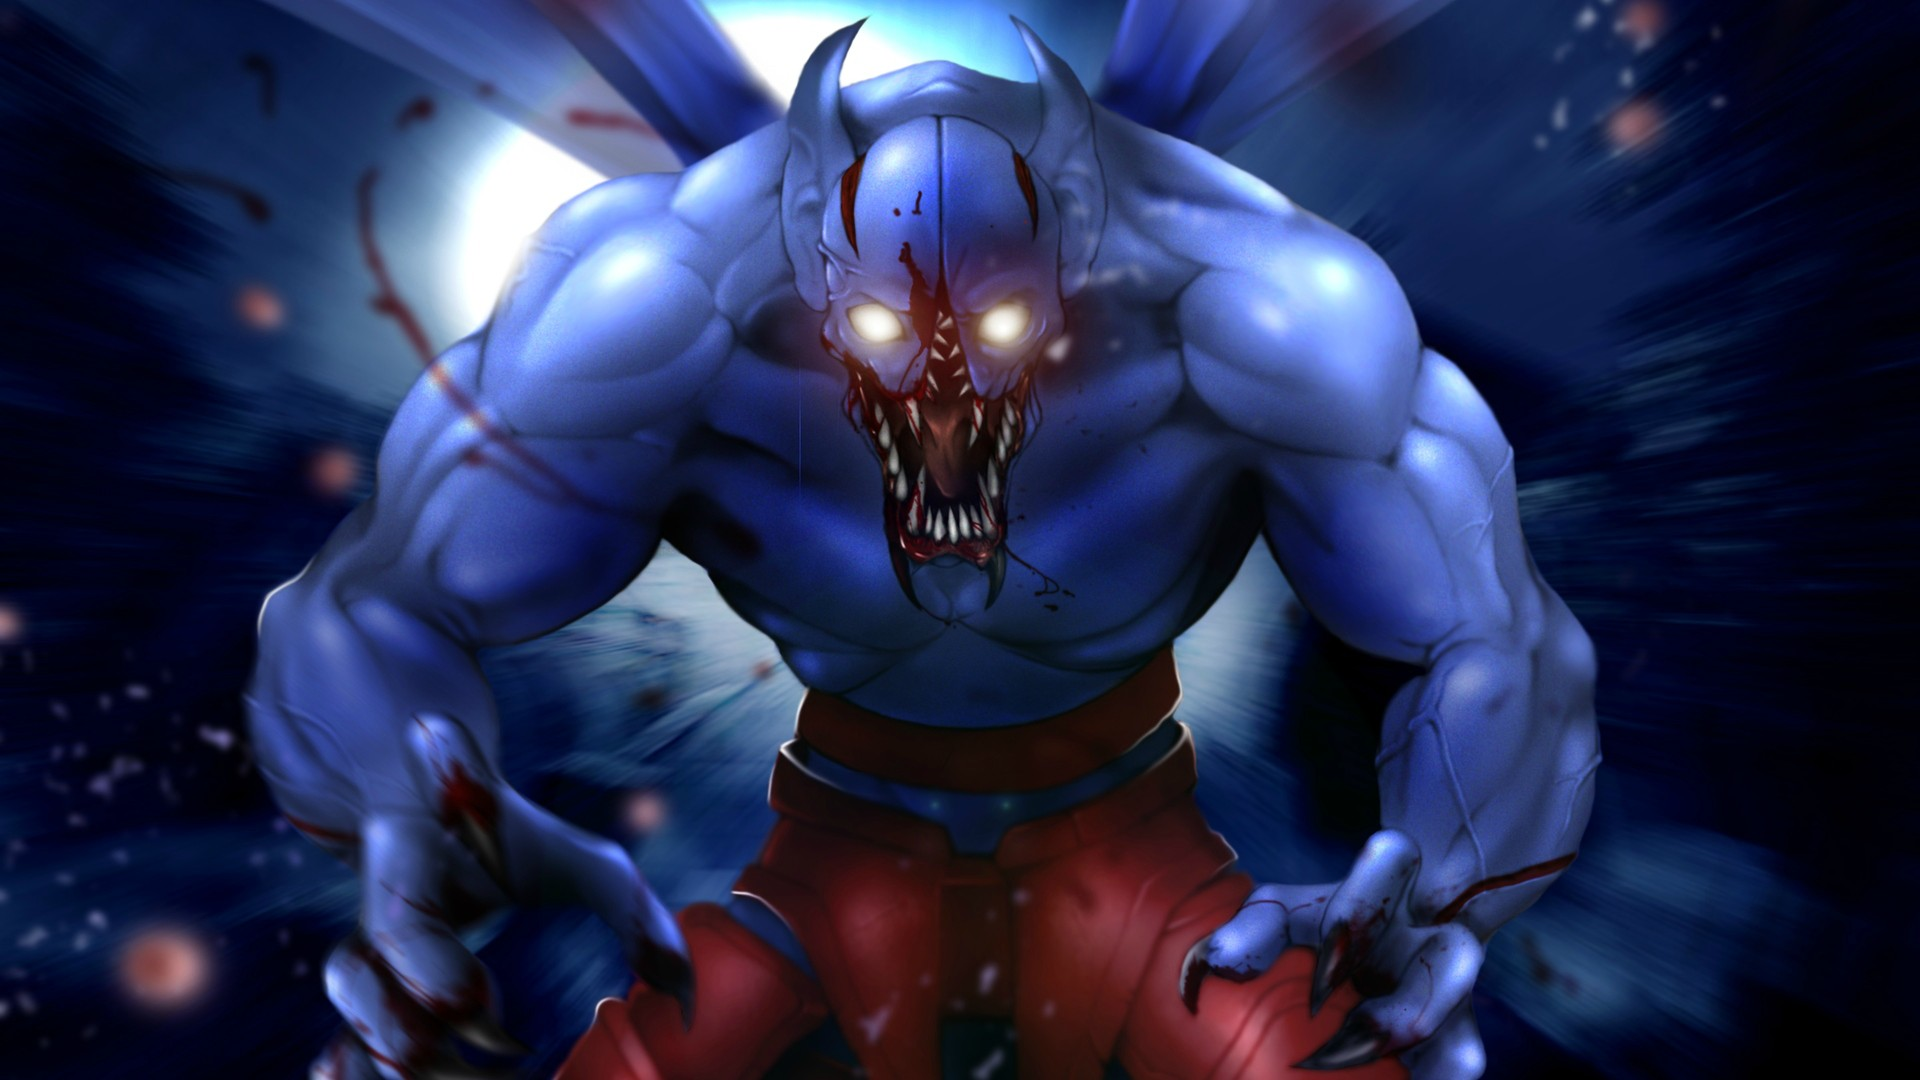 Night Stalker wallpapers and backgrounds Dota 2